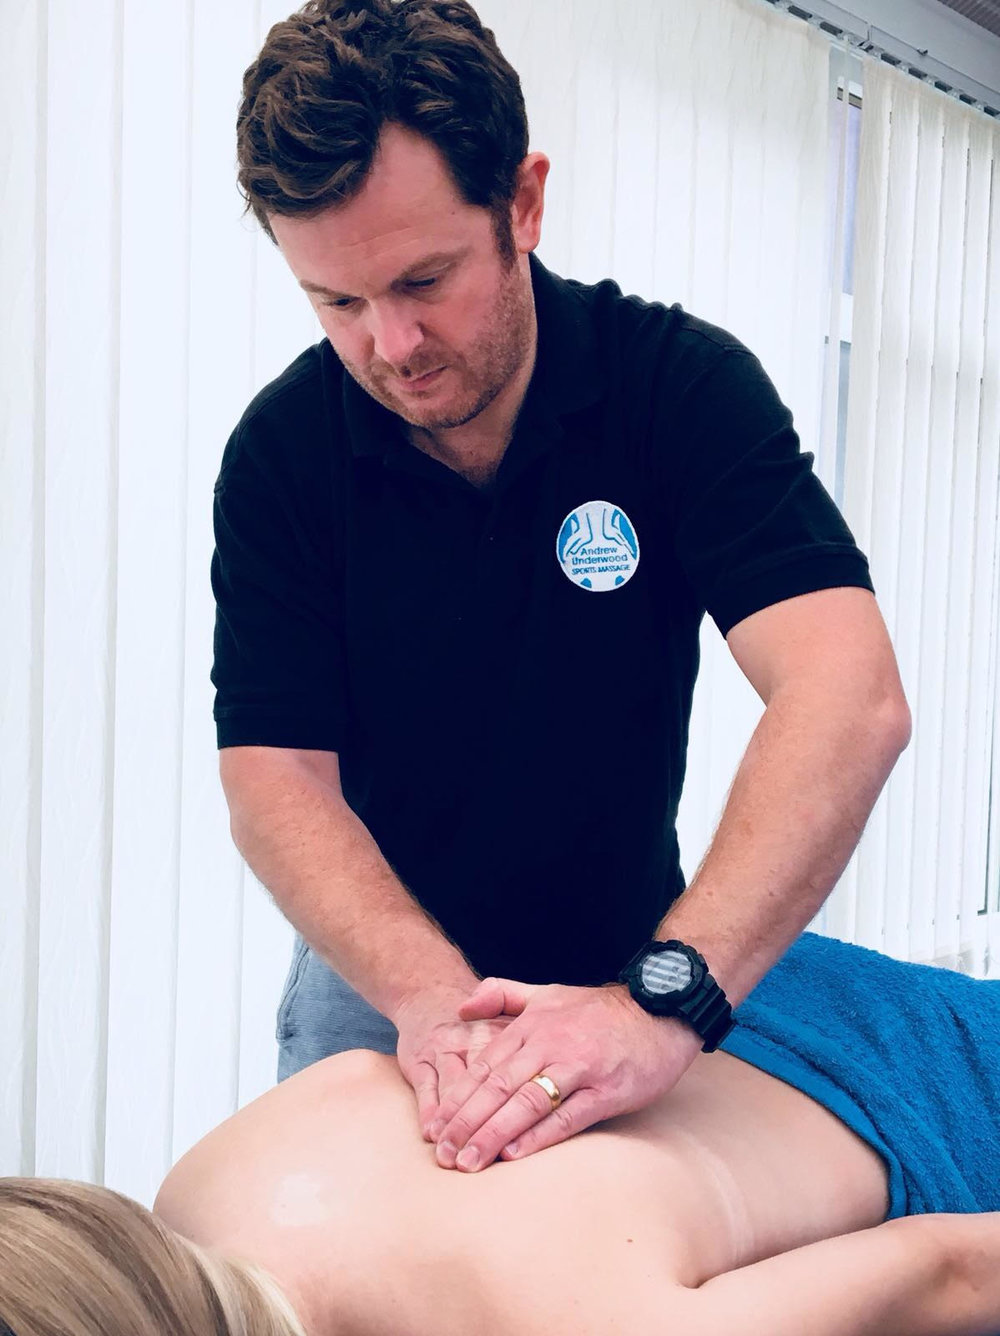 With a professionally equipped home clinic in Studley on the borders between Warwickshire and Worcestershire, I offer a Sports Massage of either 30 or 60 minutes (or longer if required). As of January 2019 I am also offering Taster Sessions of 20 minutes for £15.Equally, I can travel to any location of your choice within an approximately 10 mile radius, covering Redditch, Henley in Arden, Alcester, Warwick and Stratford on Avon.You don't need to bring anything, as I will come fully equipped with a professional massage bench, towels and oils. -